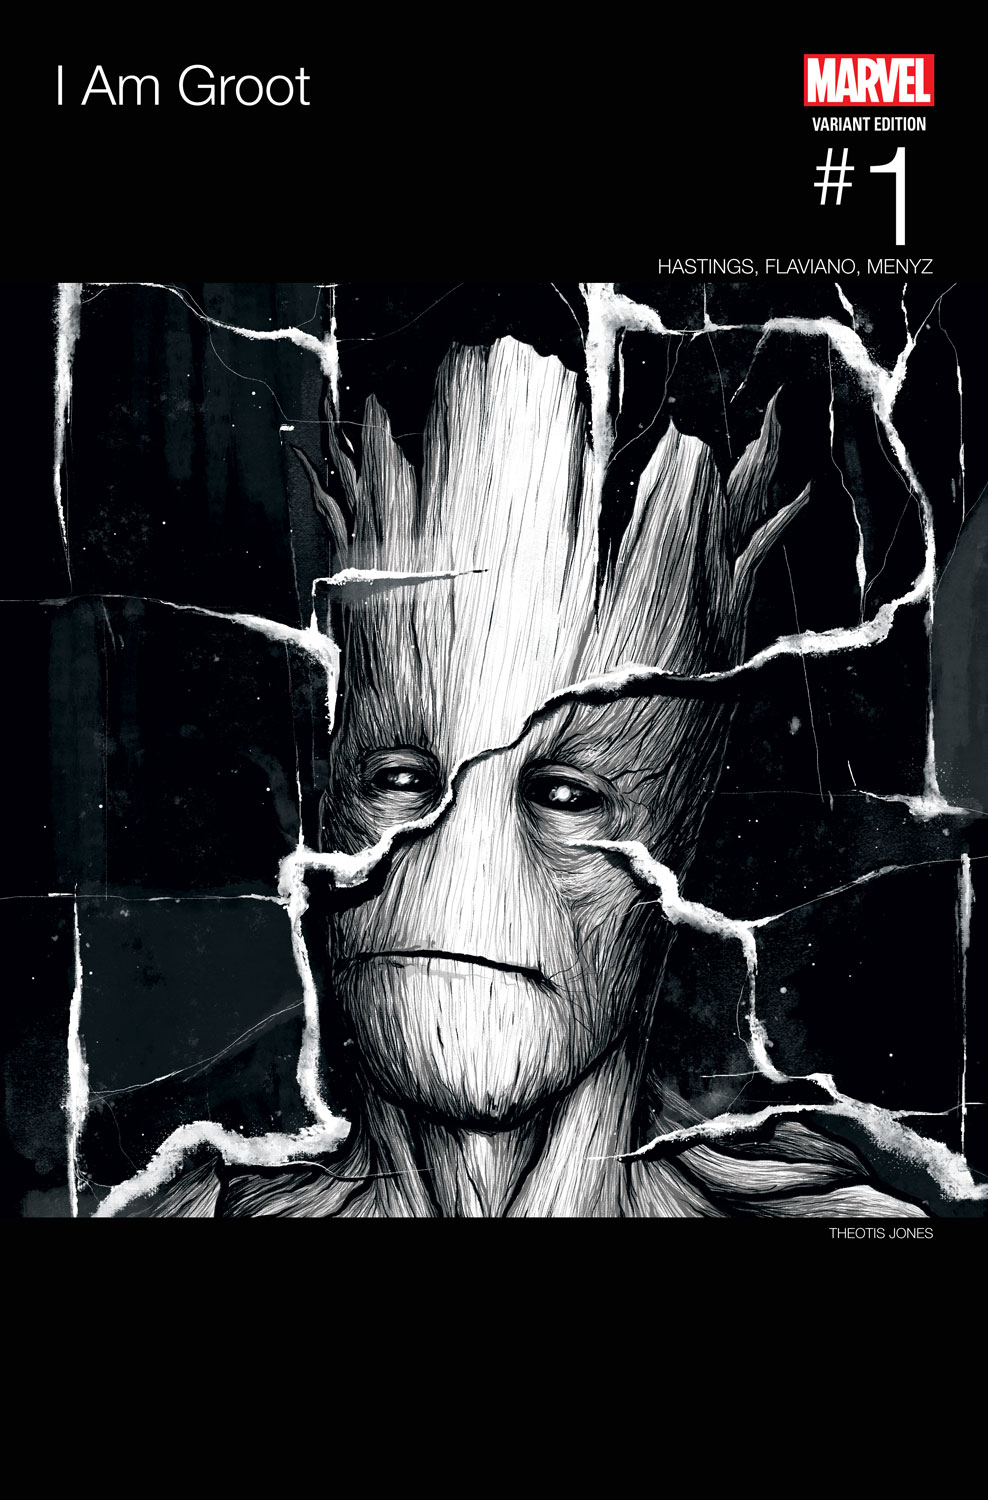 I Am Groot Your First Look At The New Series Diskingdom Com Disney Marvel